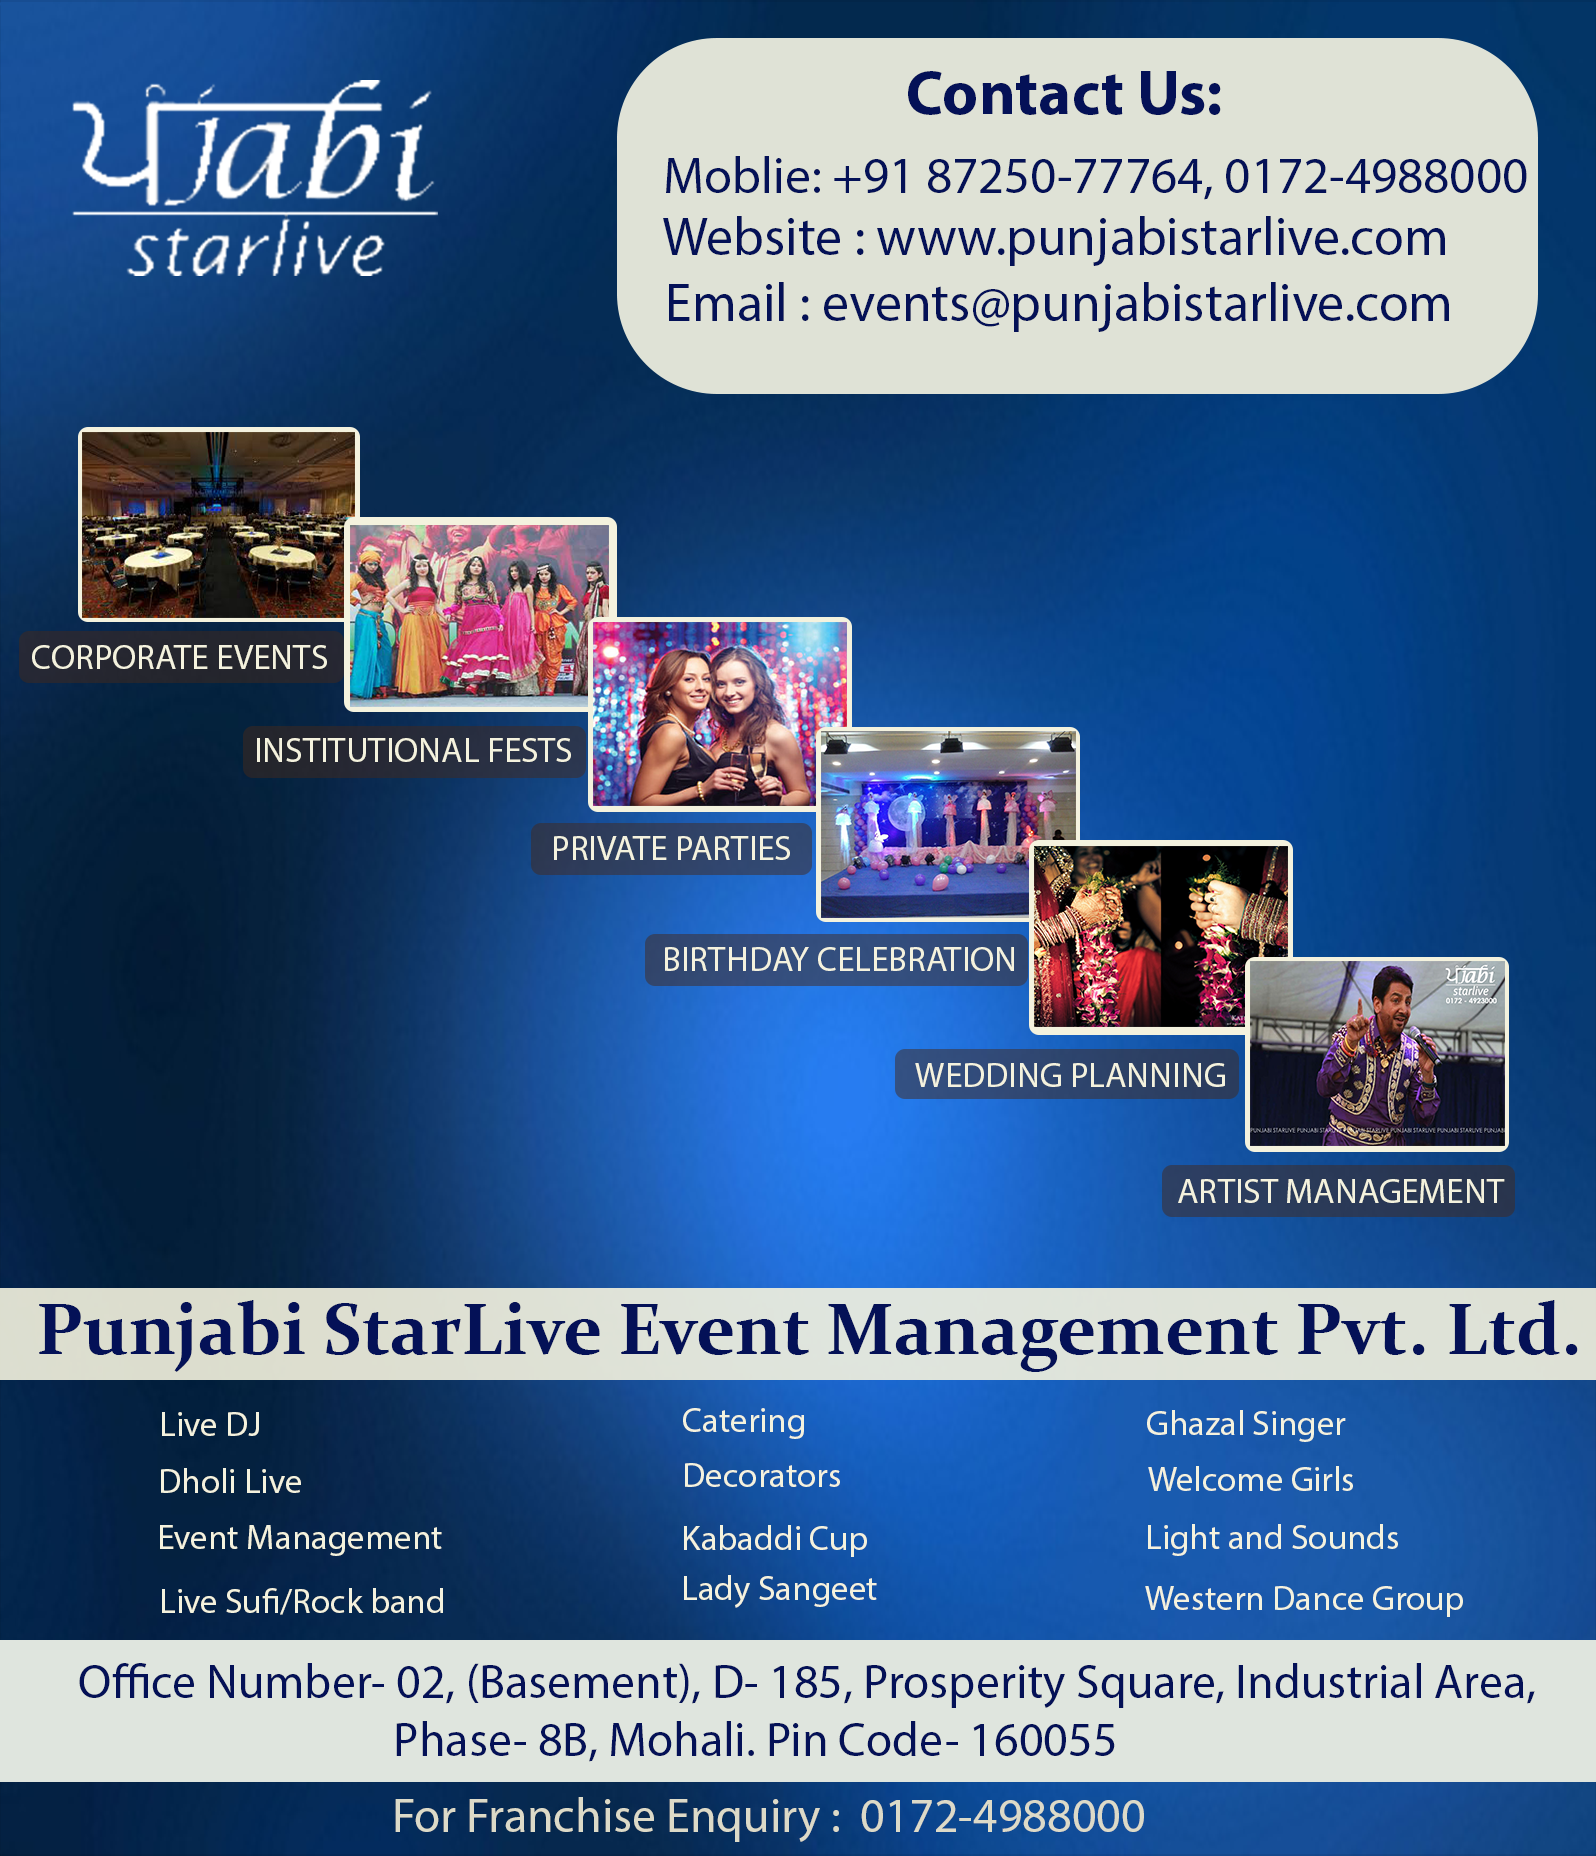 Call 01724988000 now for Get Event Management services in